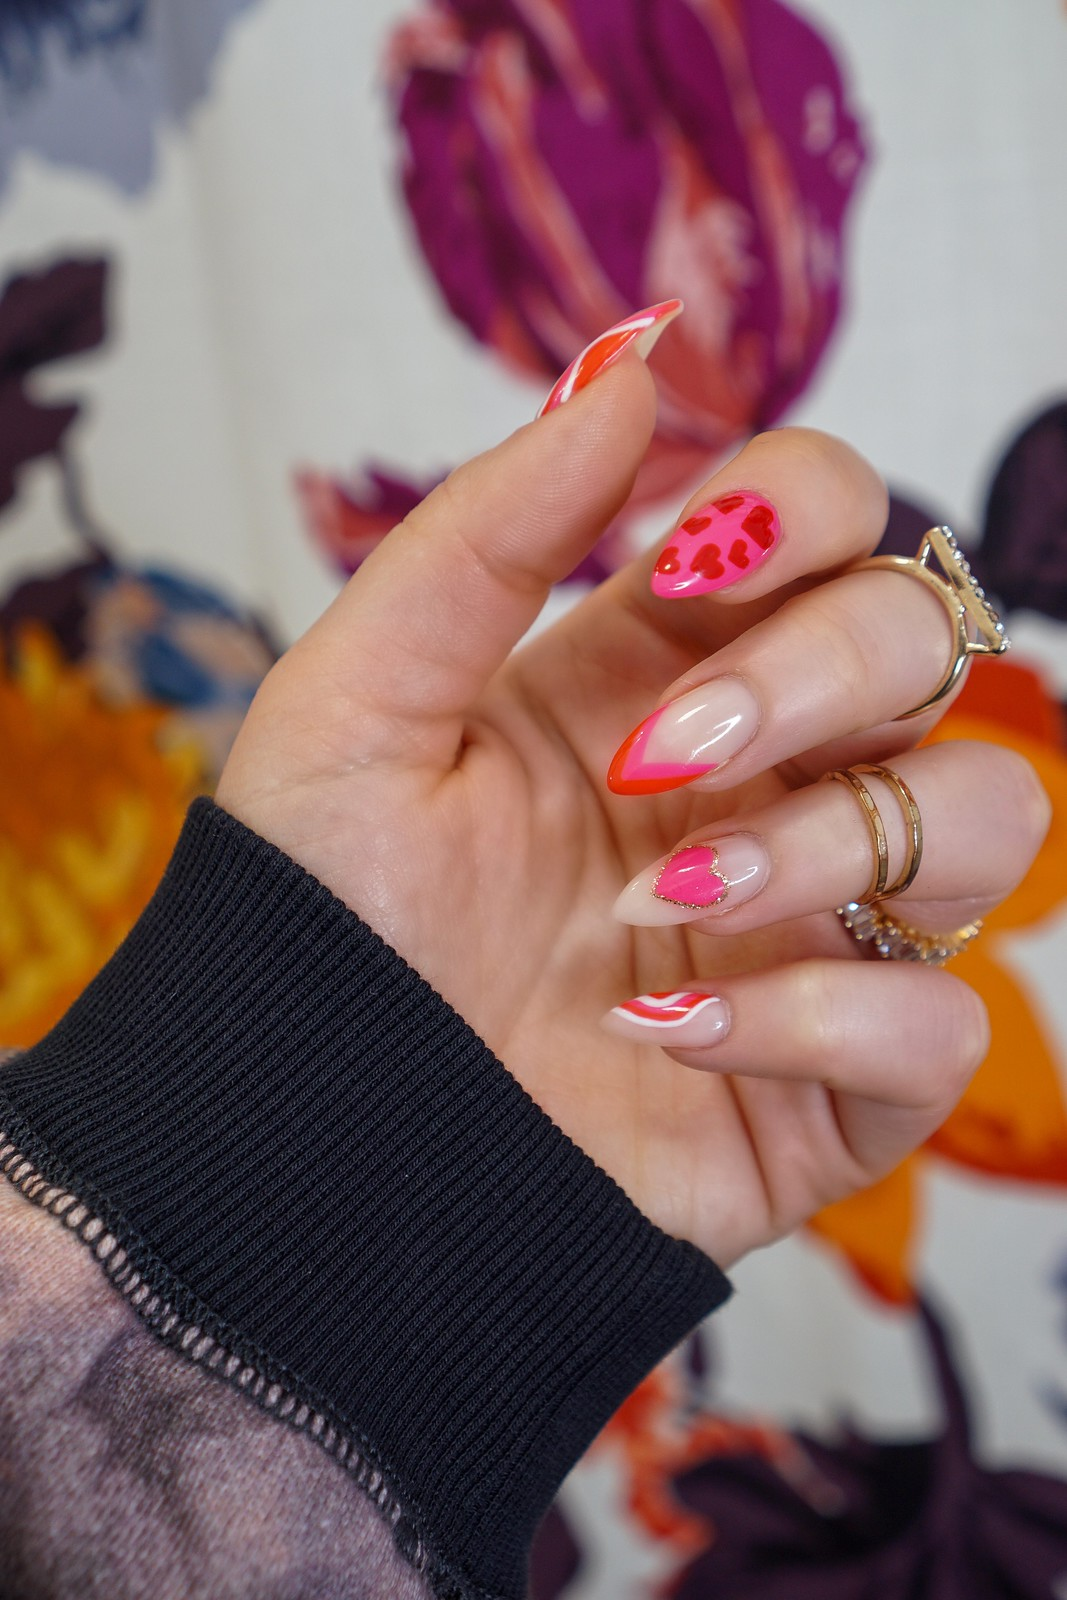 Red & Pink Valentine's Day Nails | Valentines Nails | Heart Nails | Almond Nails | Gel Manicure | Abstract Nail Art | Nail Design Inspiration | February Nails | Negative Space Nails